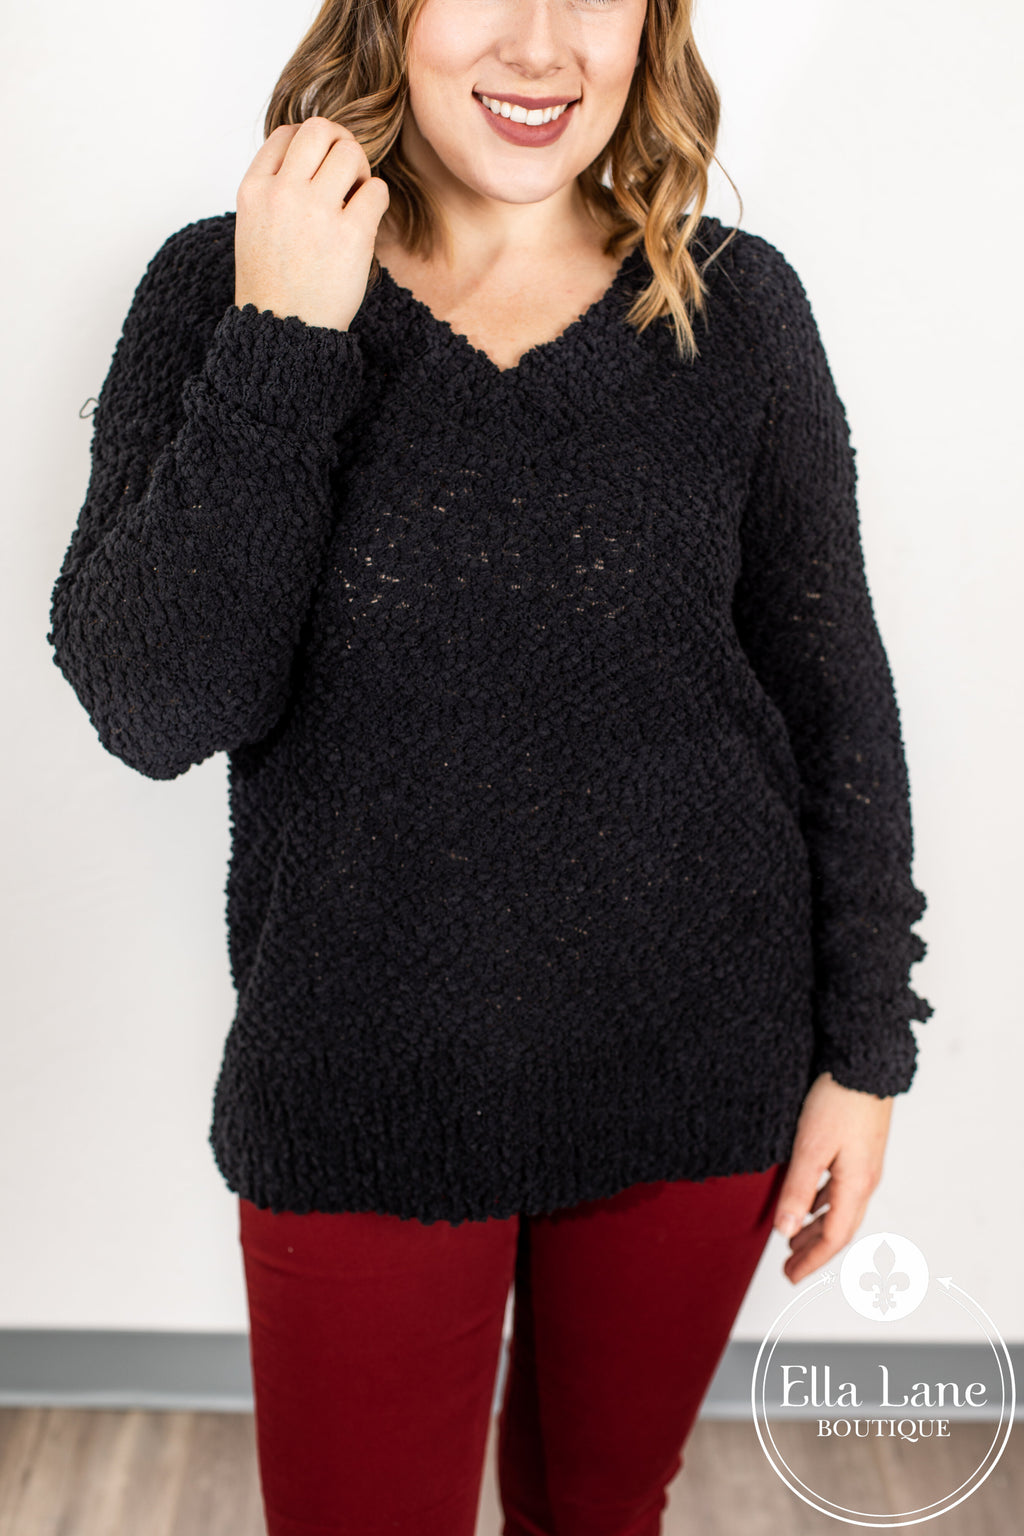 Popcorn V Neck Sweater - Black